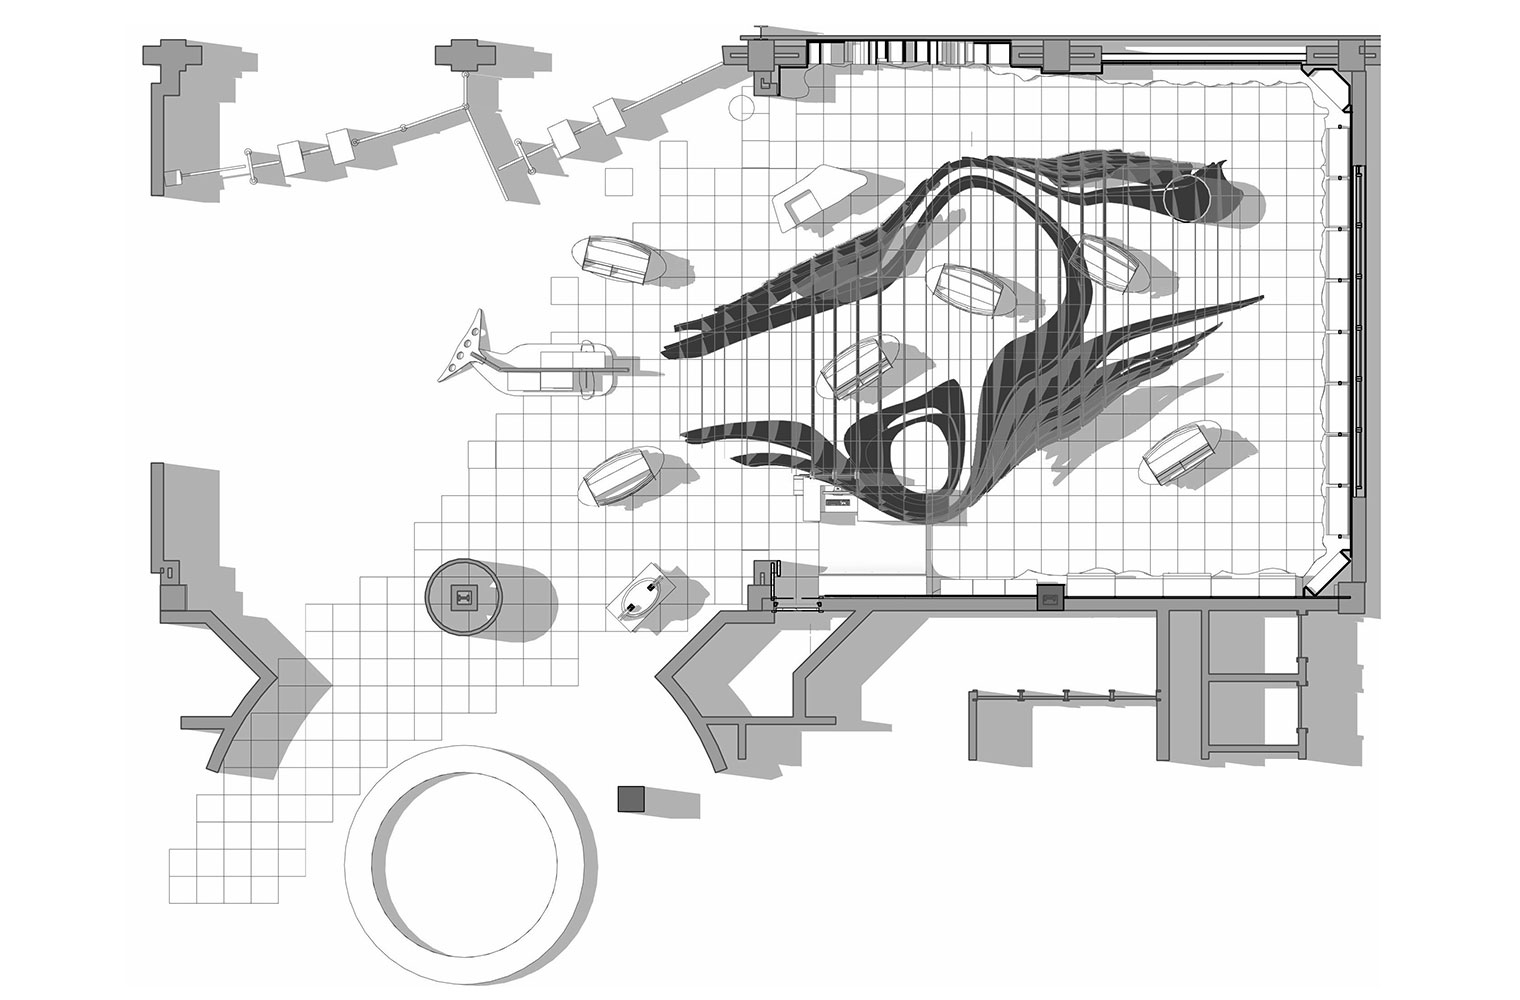 V&A Aquarium Shop - Floor Plan